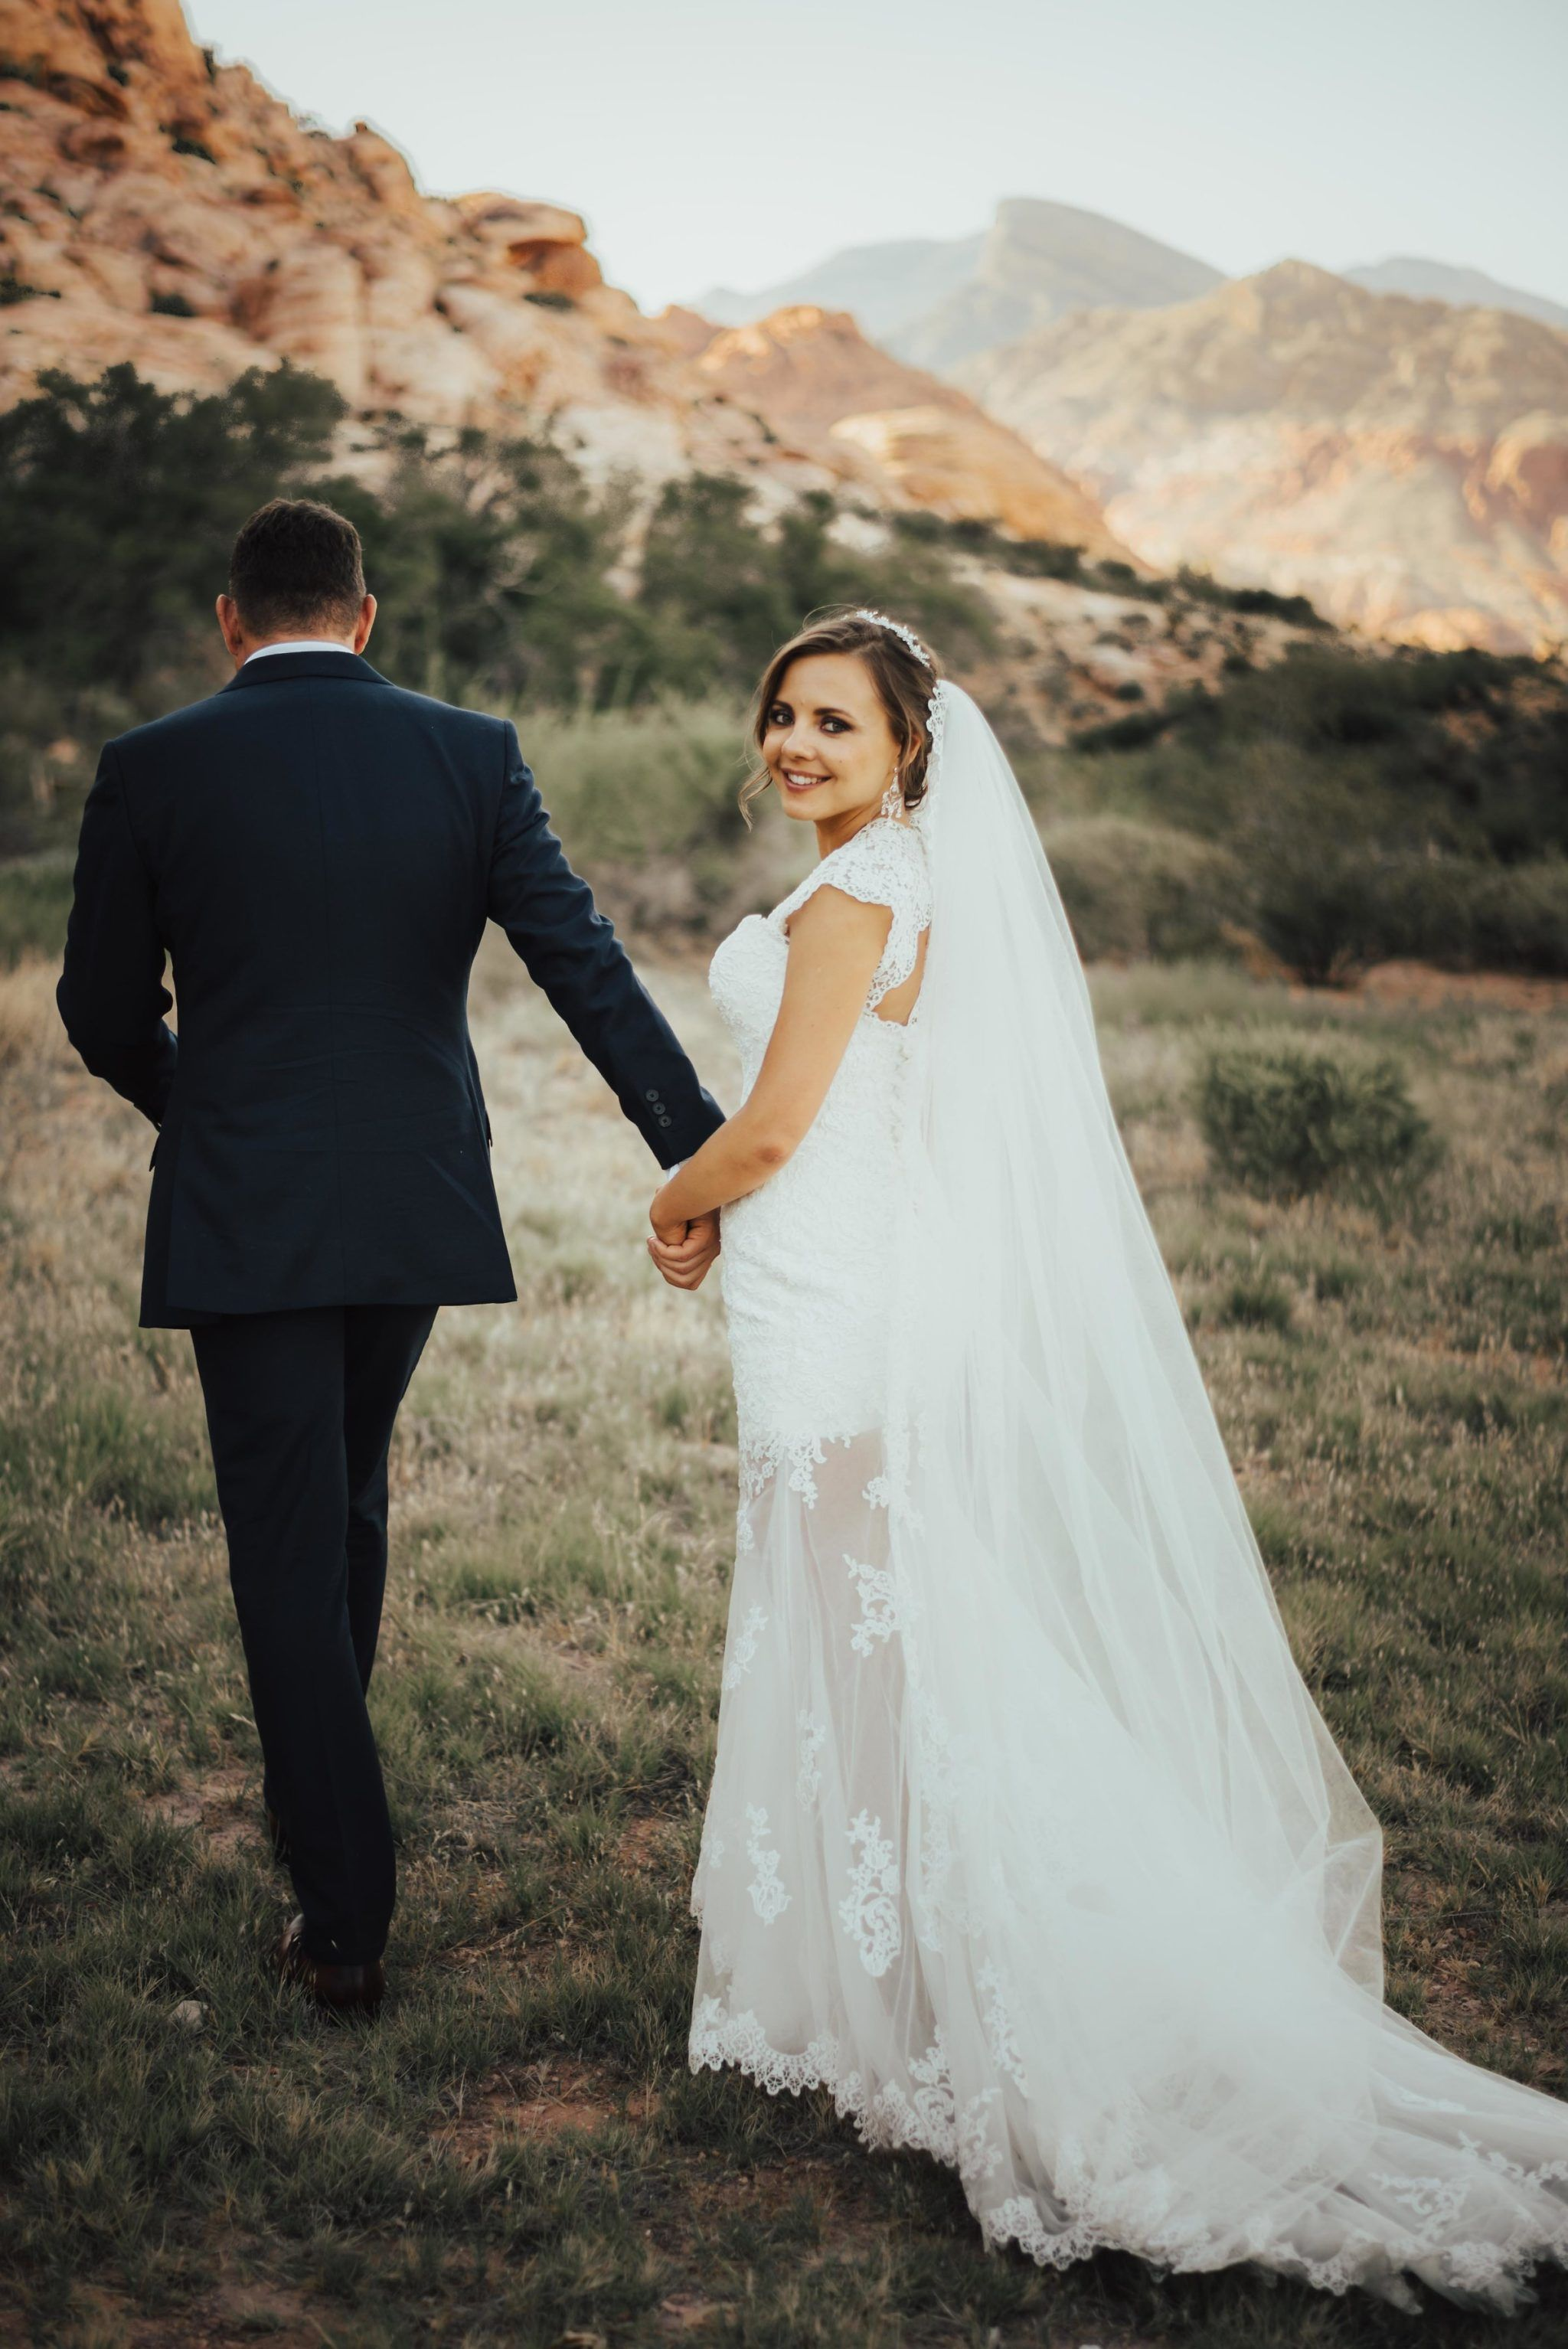 Third Cactus Creative ElopementWedding Photography at Red Rock